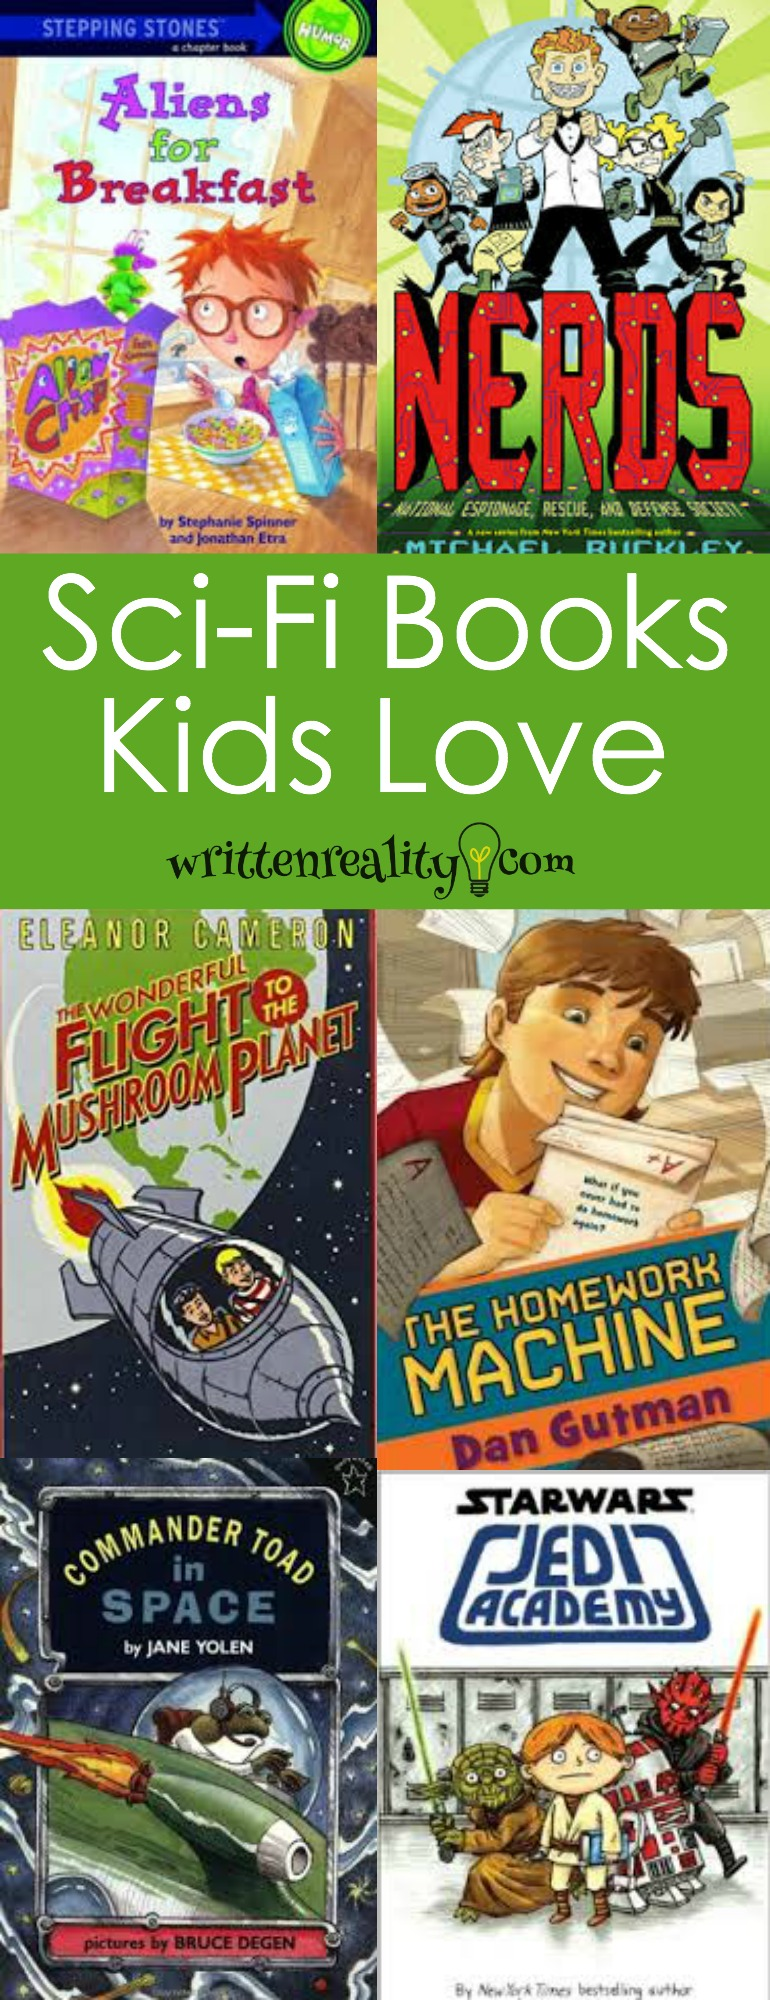 sci-fi kid books